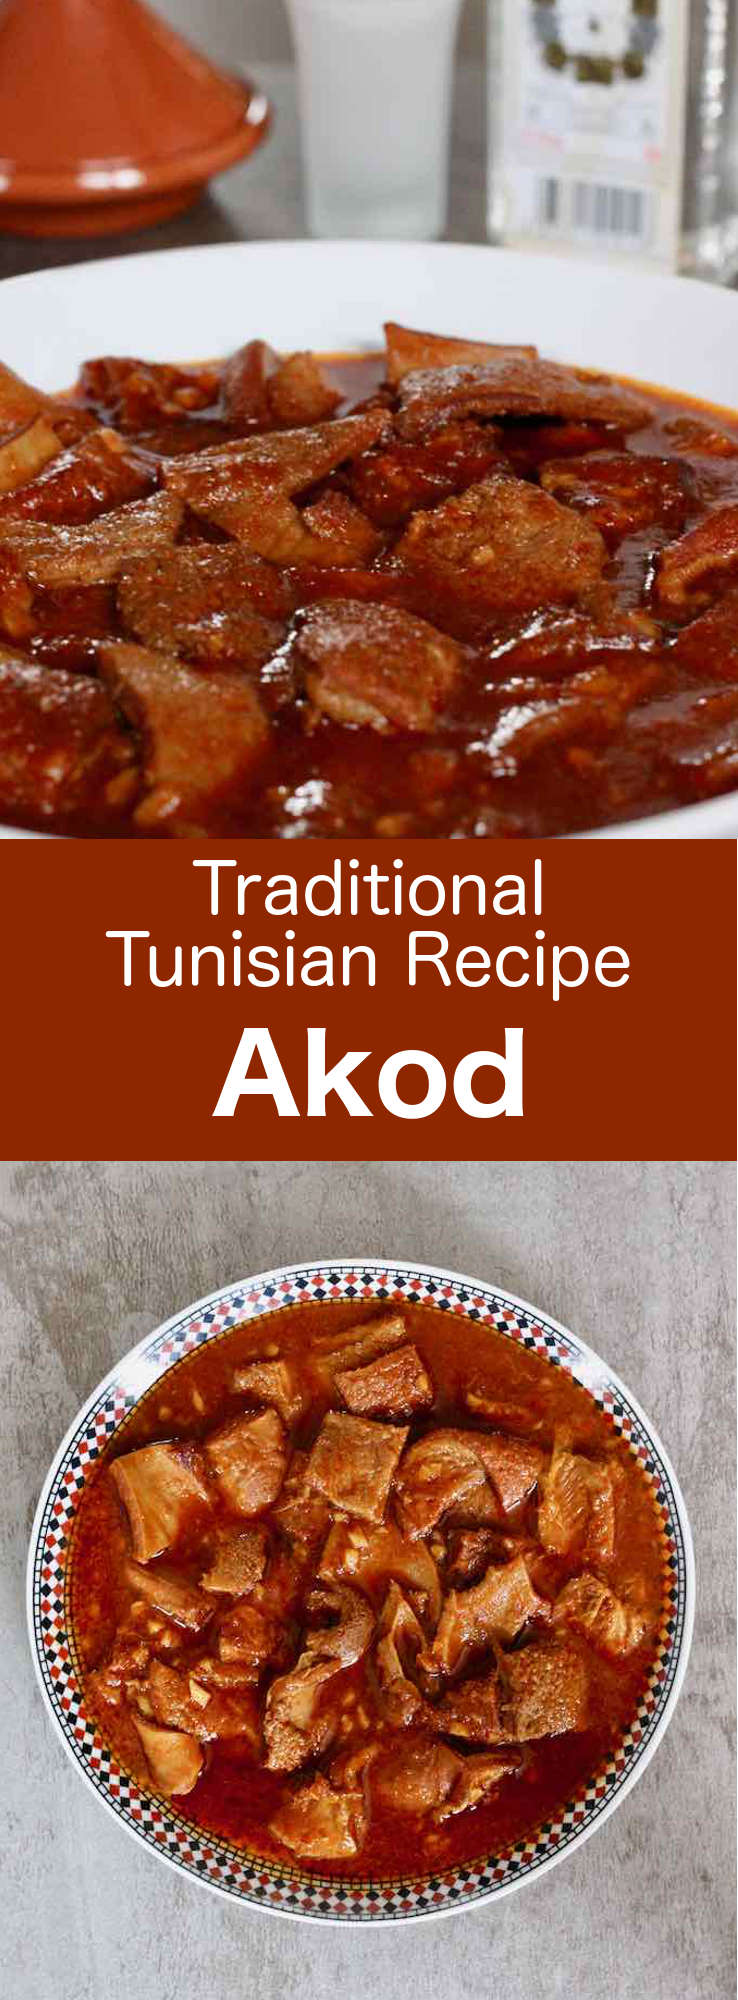 Akod is the epitome of Tunisian Jewish cuisine. It is prepared with tripe skillfully scented with cumin, garlic, tomato paste and harissa. #Tunisia #Tunisian #TunisianCuisine #TunisianRecipe #NorthAfricanCuisine #NorthAfricanRecipe #NorthAfrica #Maghreb #MaghrebCuisine #WorldCuisine #196flavors